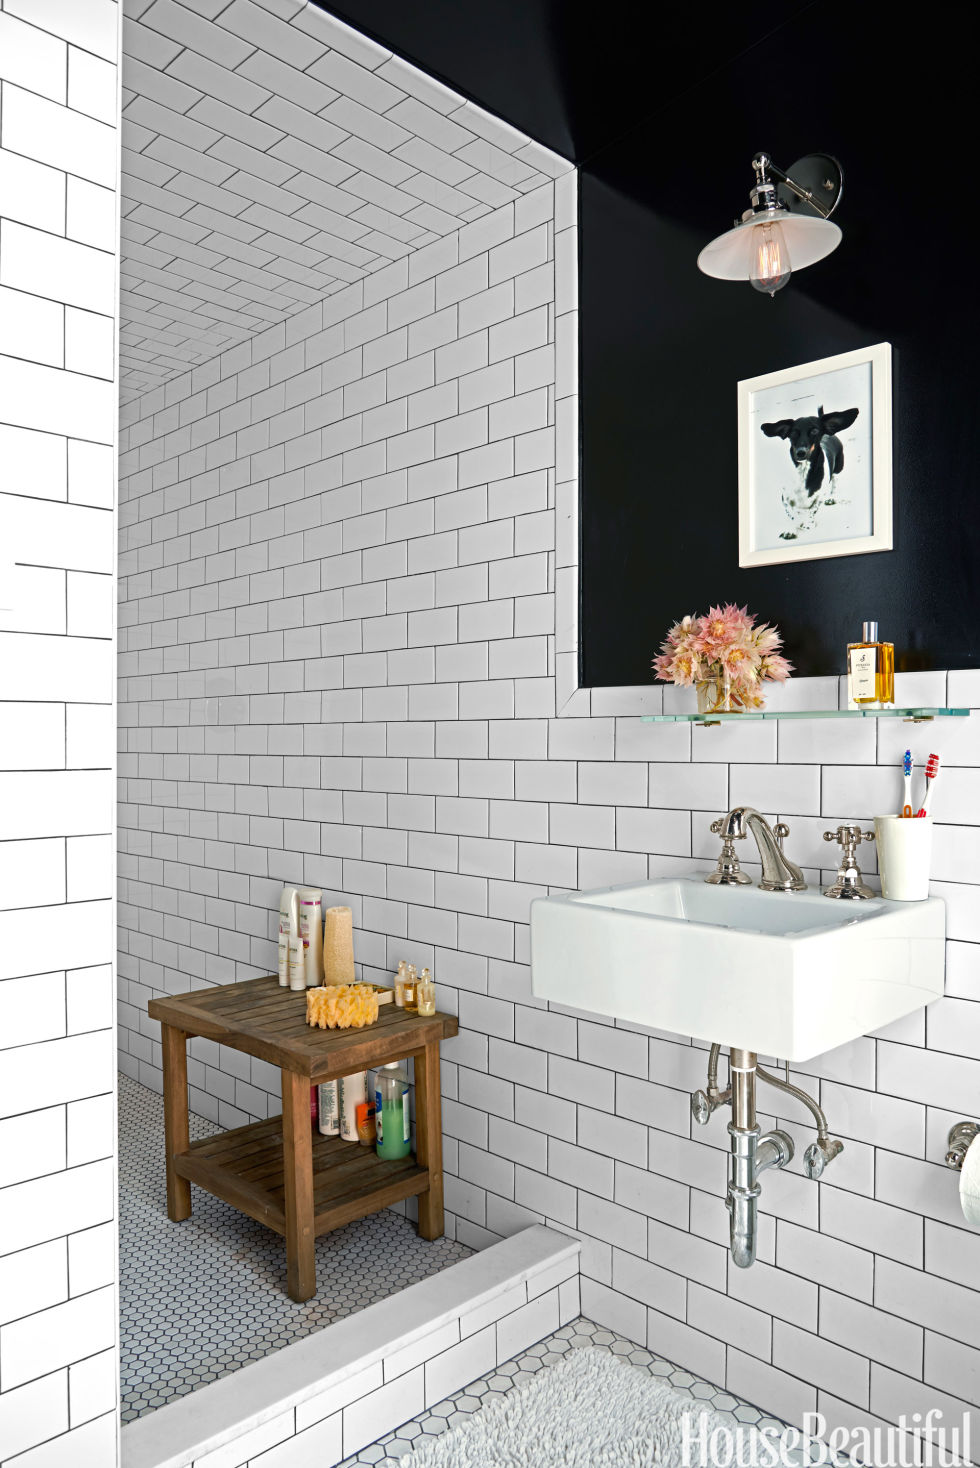 Bathroom designs pictures with tiles - 135 Best Bathroom Design Ideas Decor Pictures Of Stylish Modern Bathrooms